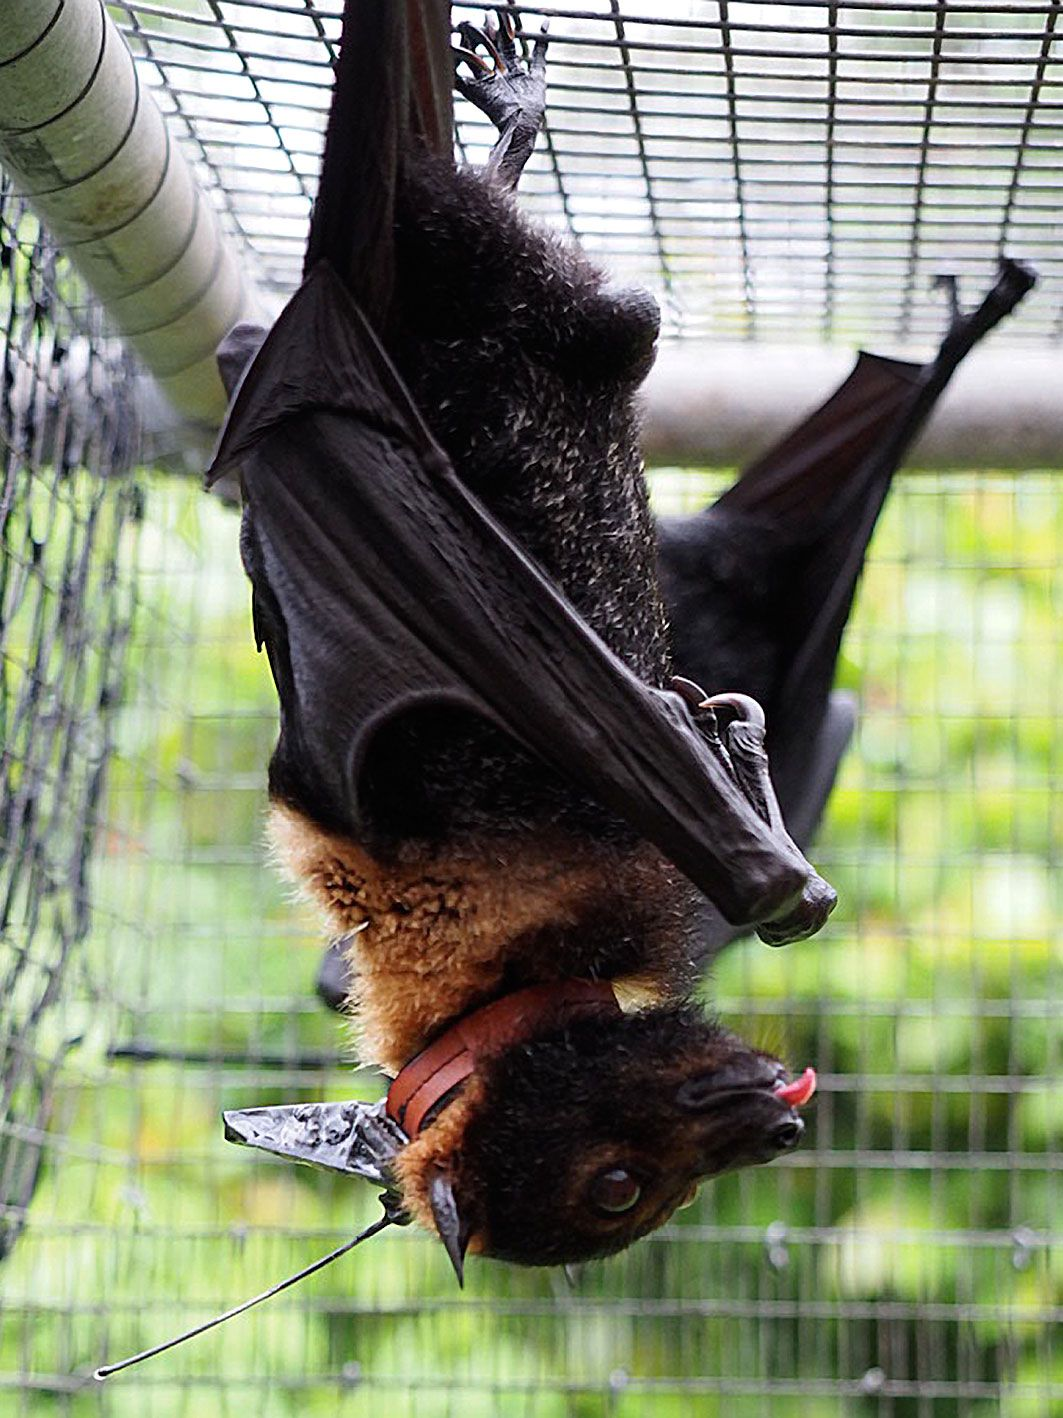 spectacled flying fox (Pteropus conspicillatus) with the collar